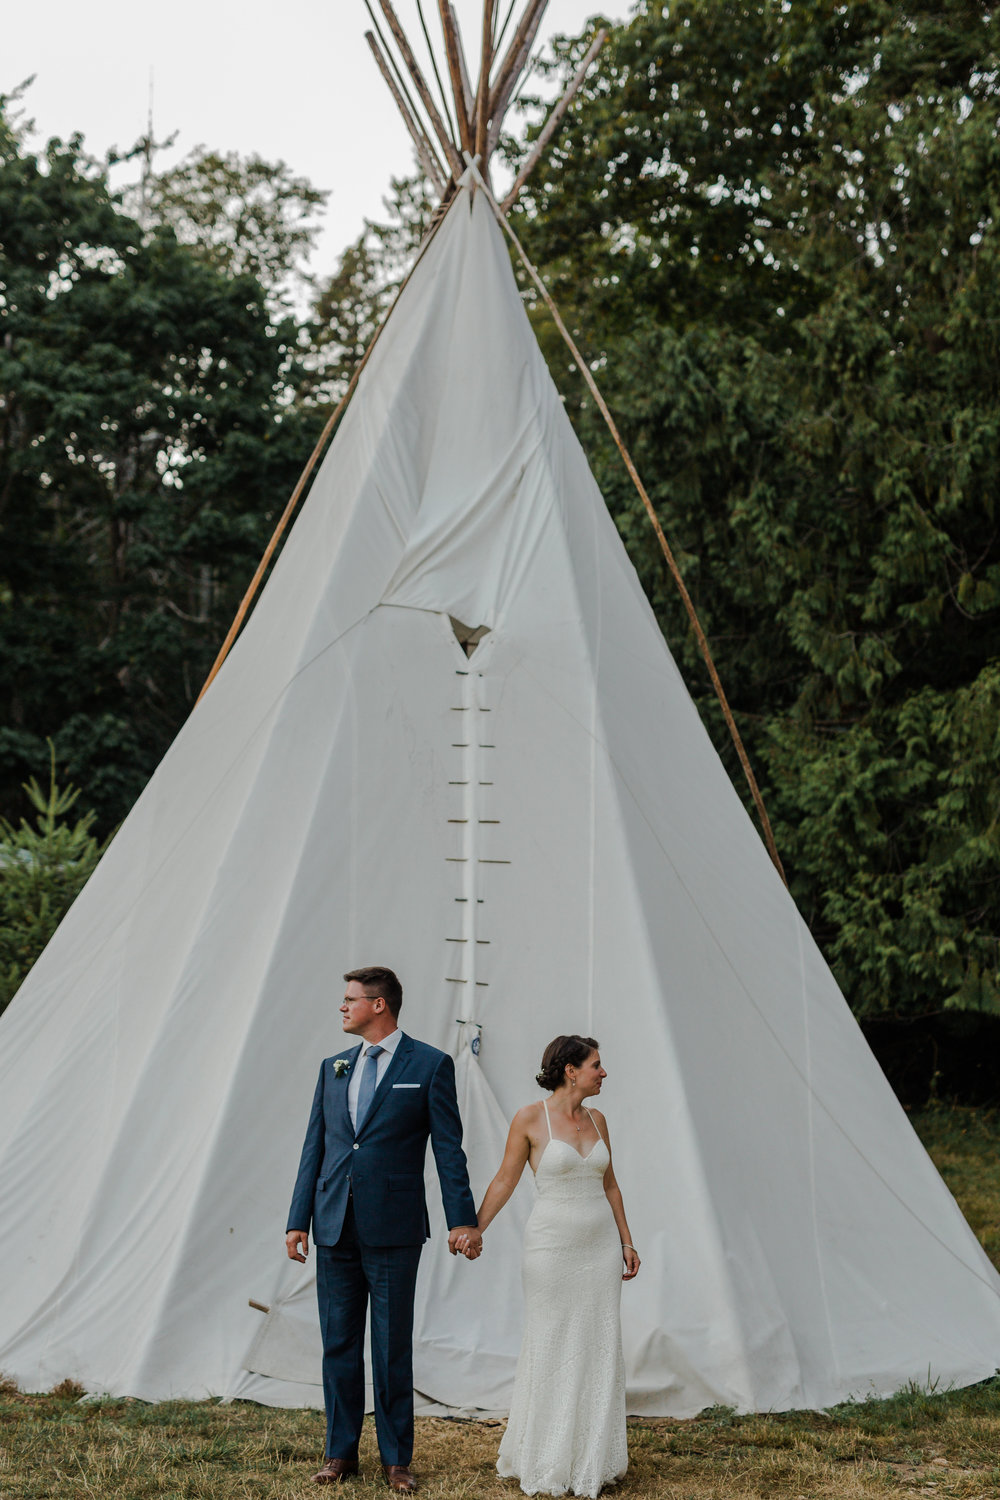 Camp Fircom Wedding - Vancouver Wedding Photographer & Videographer - Sunshine Coast Wedding Photos - Sunshine Coast Wedding Photographer - Jennifer Picard Photography - IMG_0972.jpg